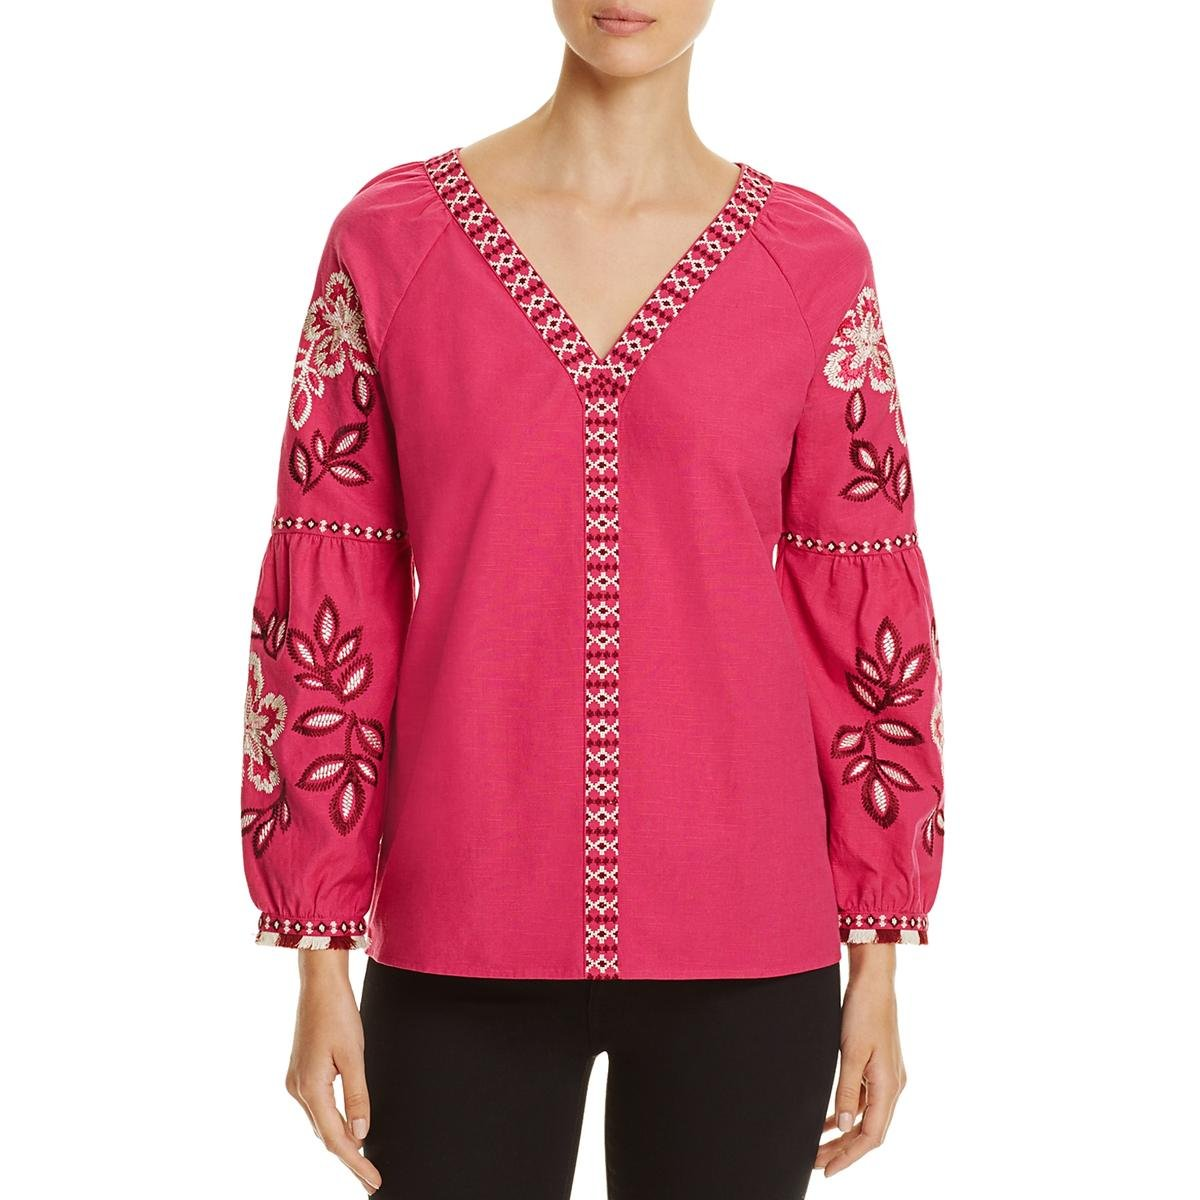 Tory Burch Womens Woven Printed Tunic Top Pink 4